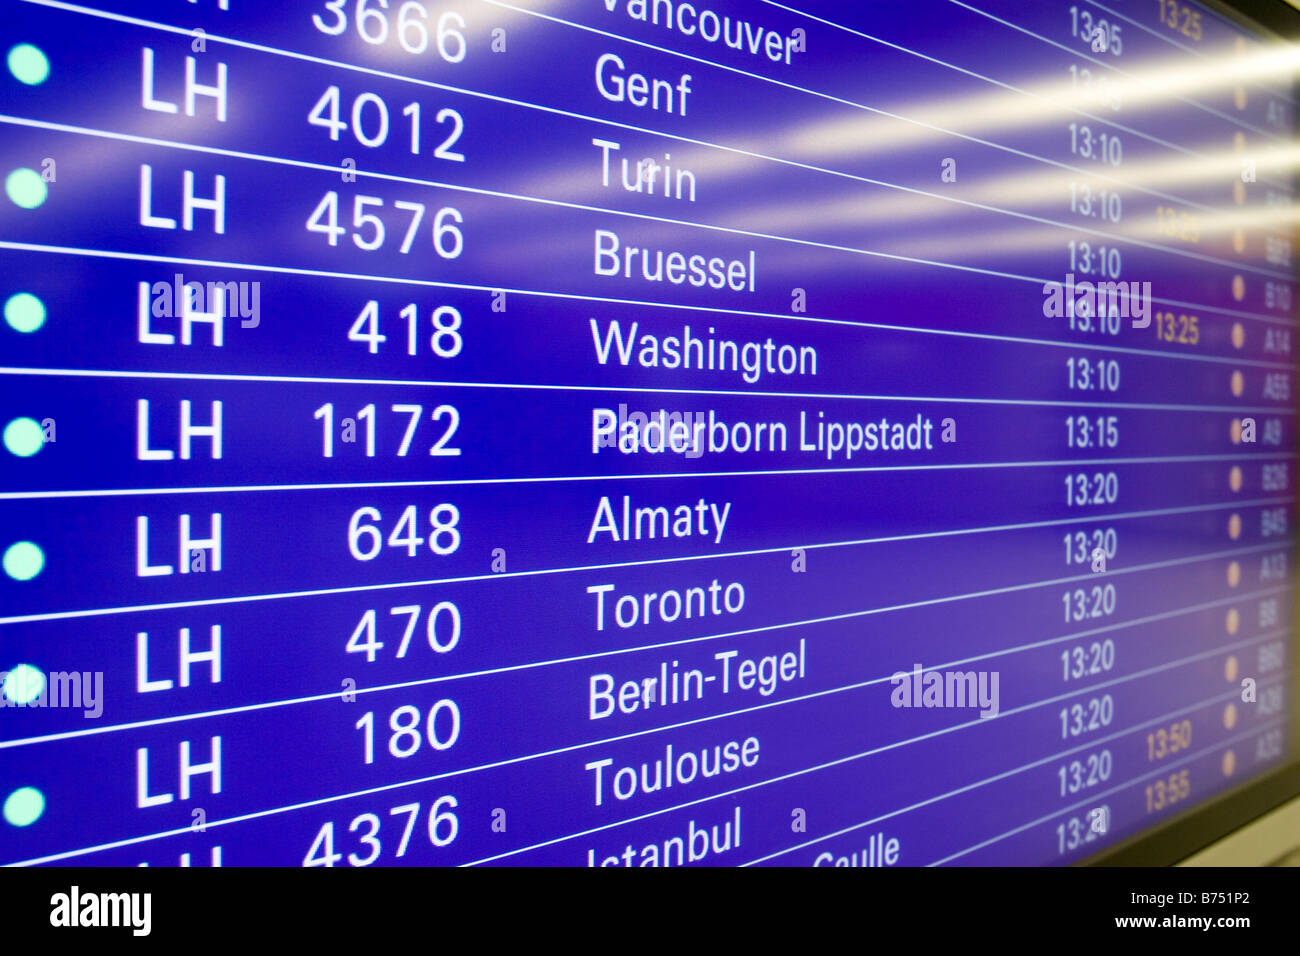 Airport flight schedule screen showing international flights with gates and departure times Frankfurt Airport Germany - Stock Image